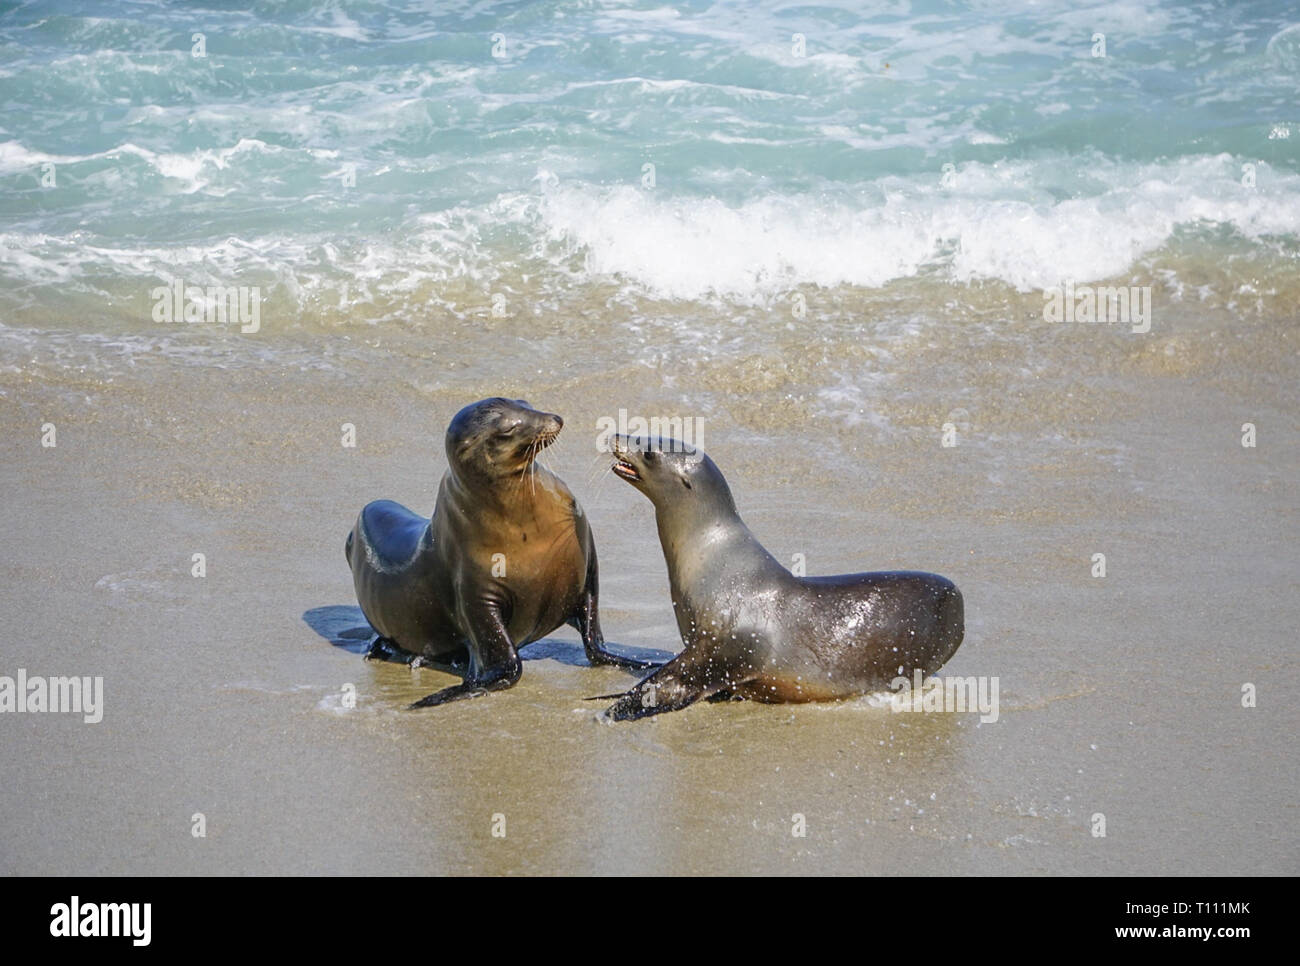 Sea Lions playing in the ocean surf off the California Coast Stock Photo